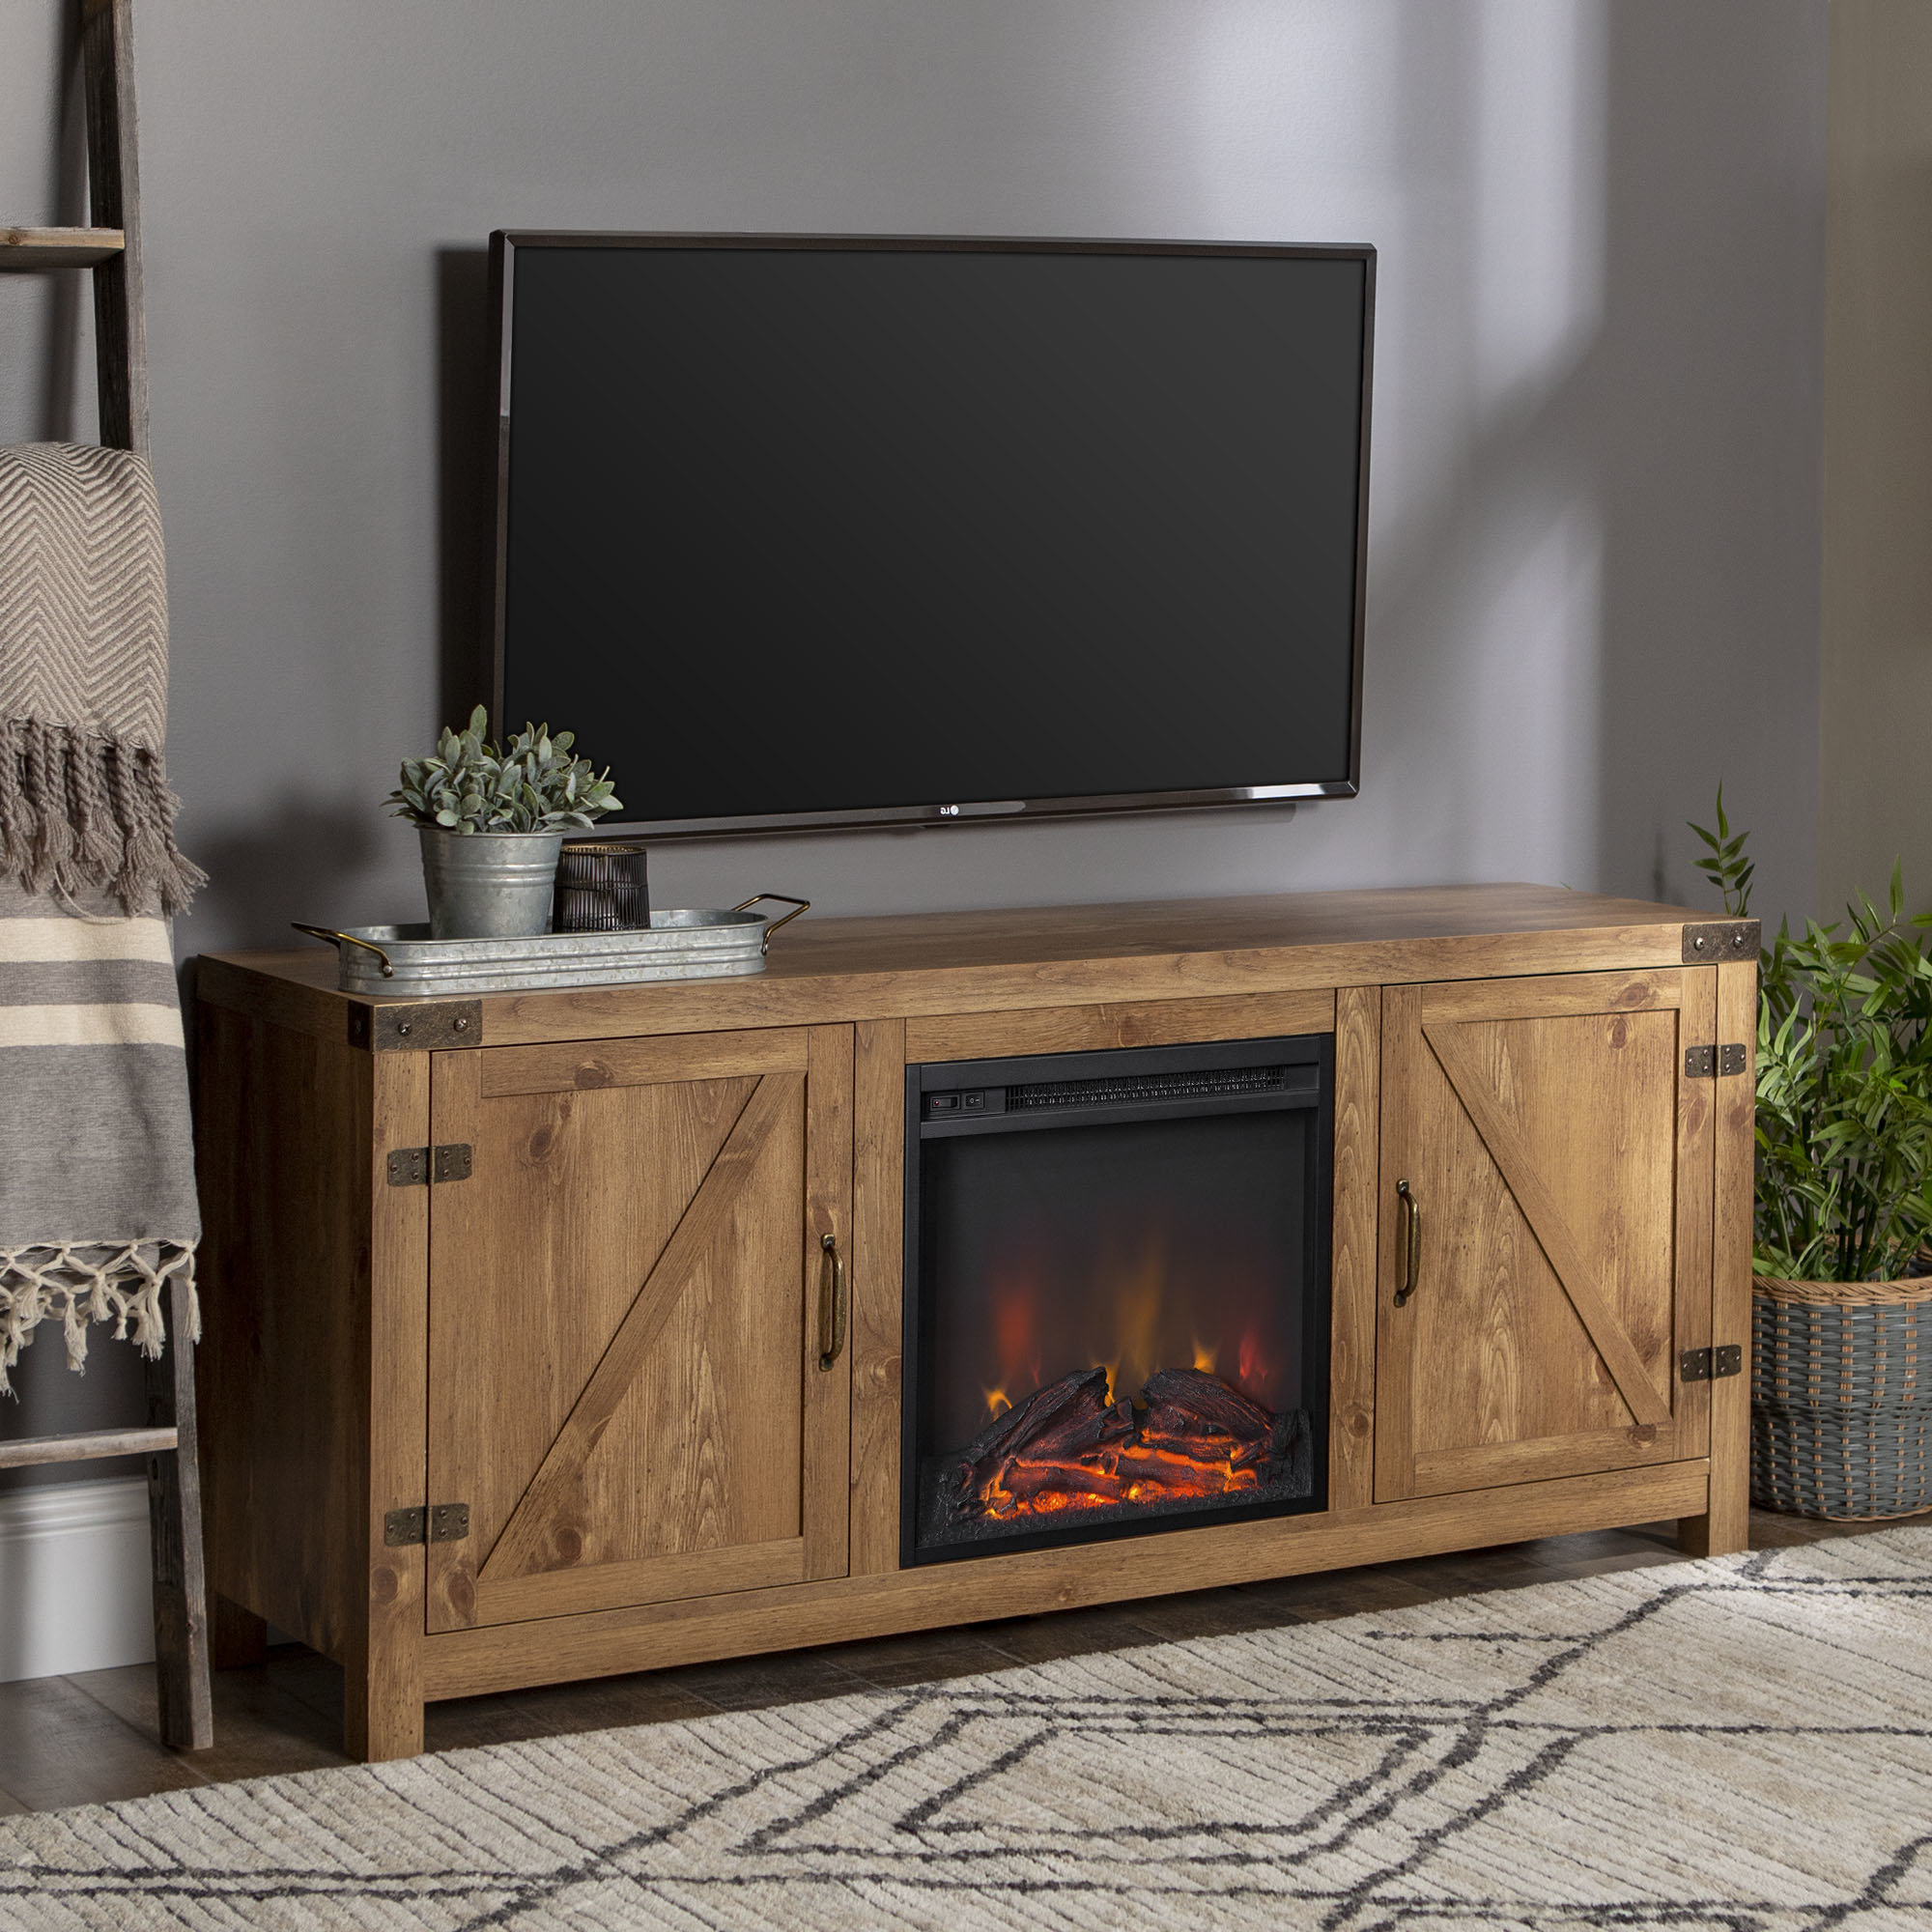 Sinclair Grey 54 Inch Tv Stands For Most Up To Date 60 69 Inch Tv Stand Fireplaces You'll Love (Gallery 15 of 20)